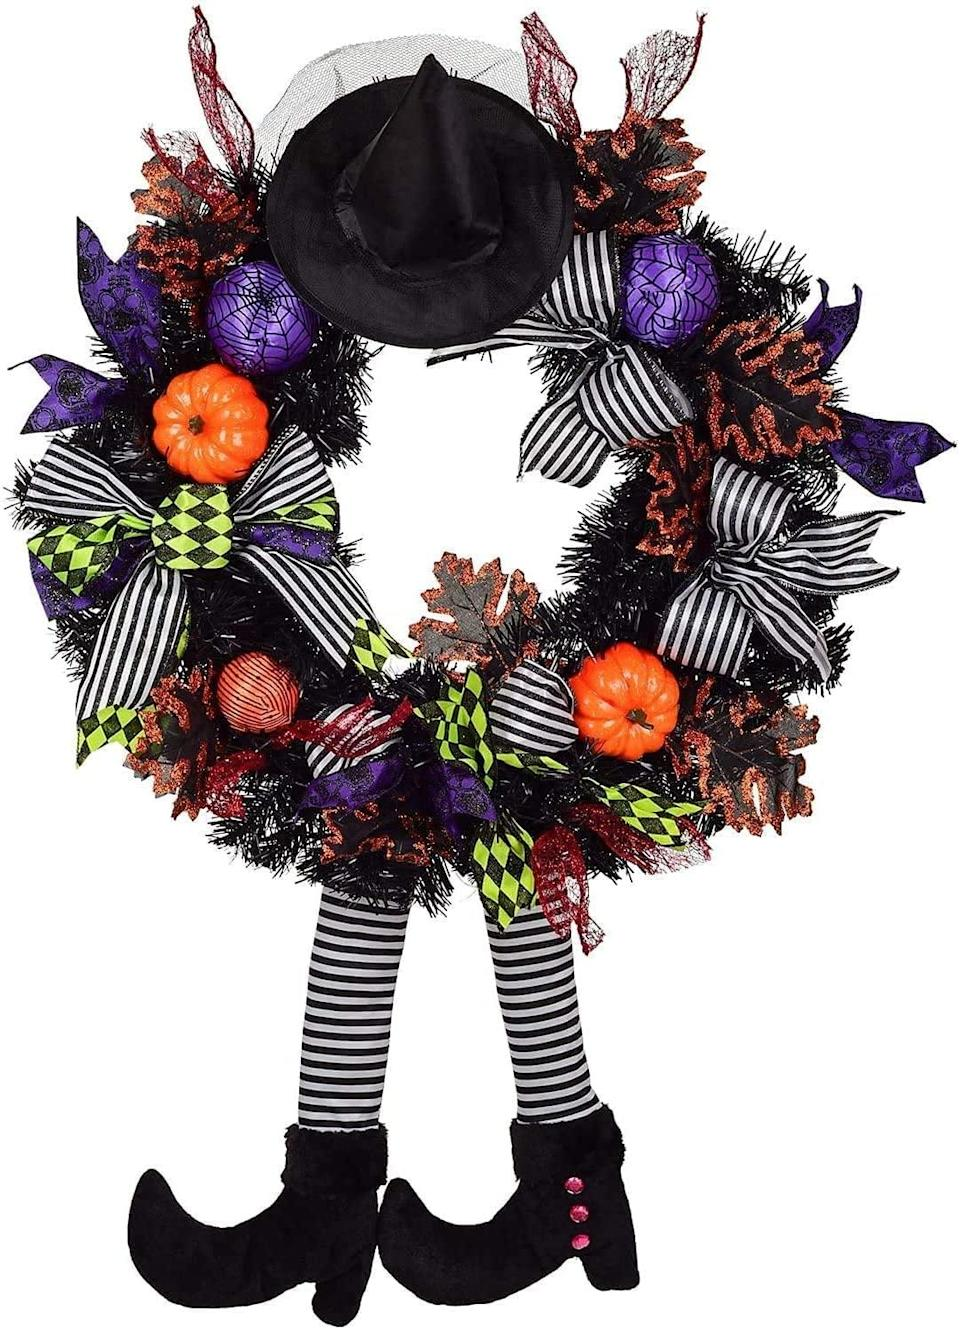 """<p>Instill your room with cute witchy vibes with this festive <span>KCOTO Witch Halloween Wreath</span> ($16, originally $17). If you want to stay spooky when the holidays arrive, simply reuse this and <a href=""""http://www.popsugar.com/family/Christmas-Decorating-Earlier-Makes-You-Happier-44282312"""" class=""""link rapid-noclick-resp"""" rel=""""nofollow noopener"""" target=""""_blank"""" data-ylk=""""slk:add Christmas goodies"""">add Christmas goodies</a> like mistletoe and holly.</p>"""